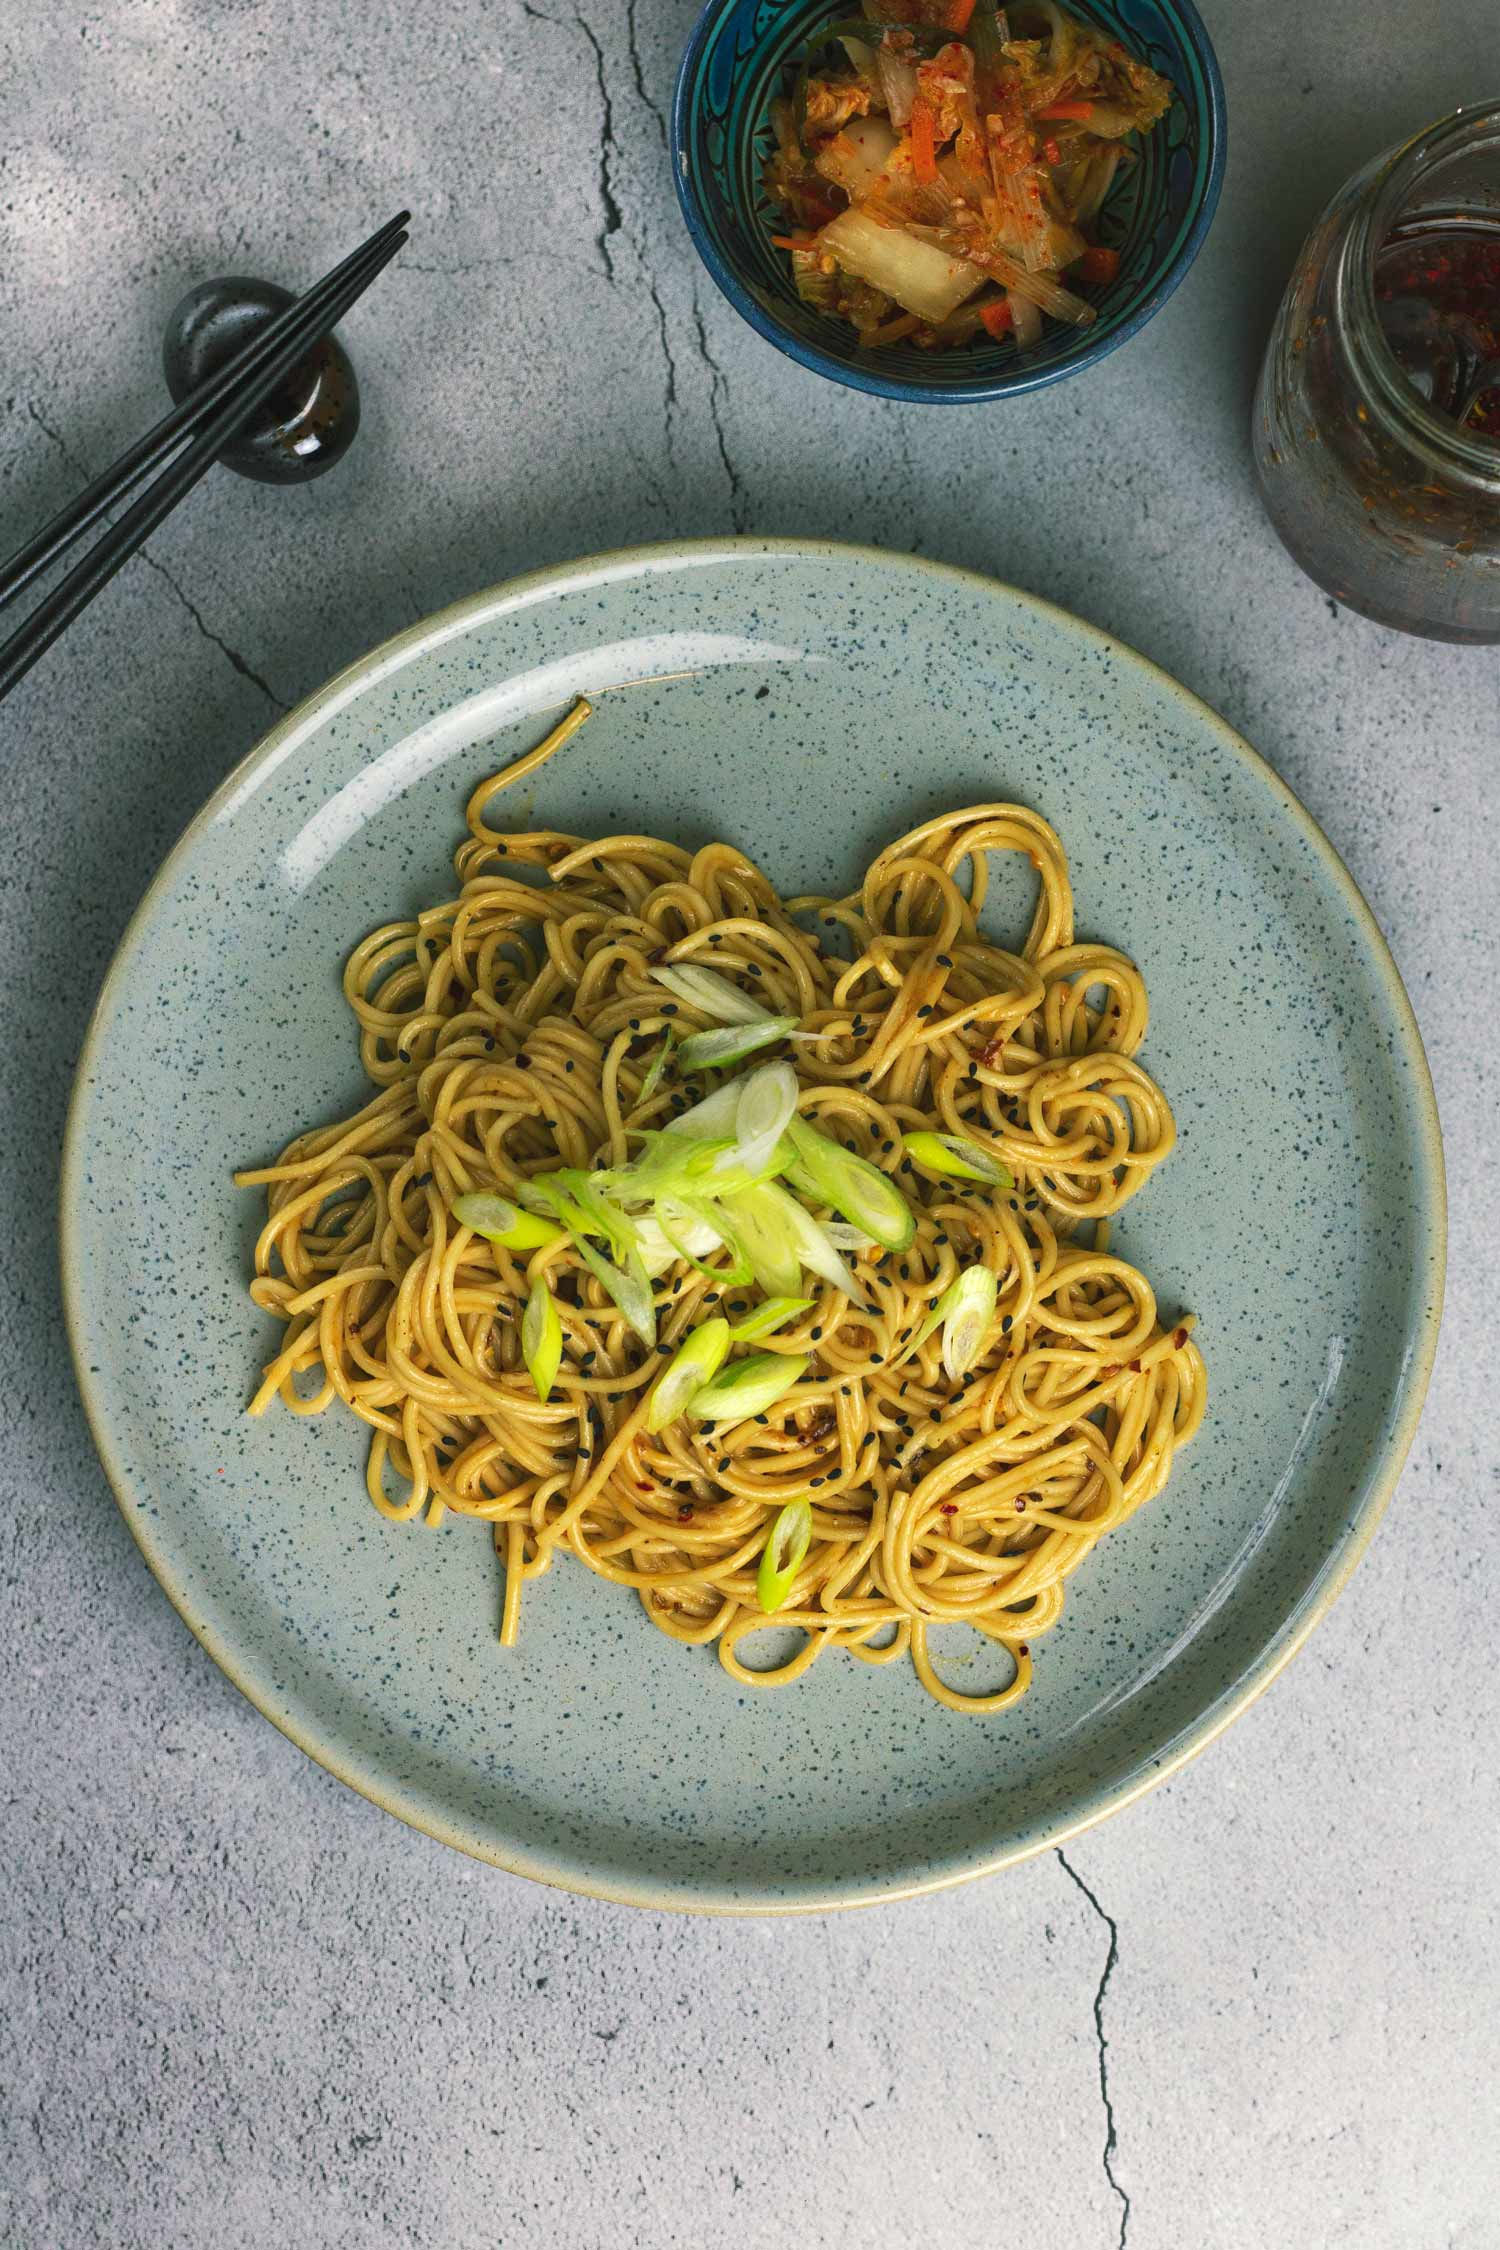 A plate of noodles topped with spring onion